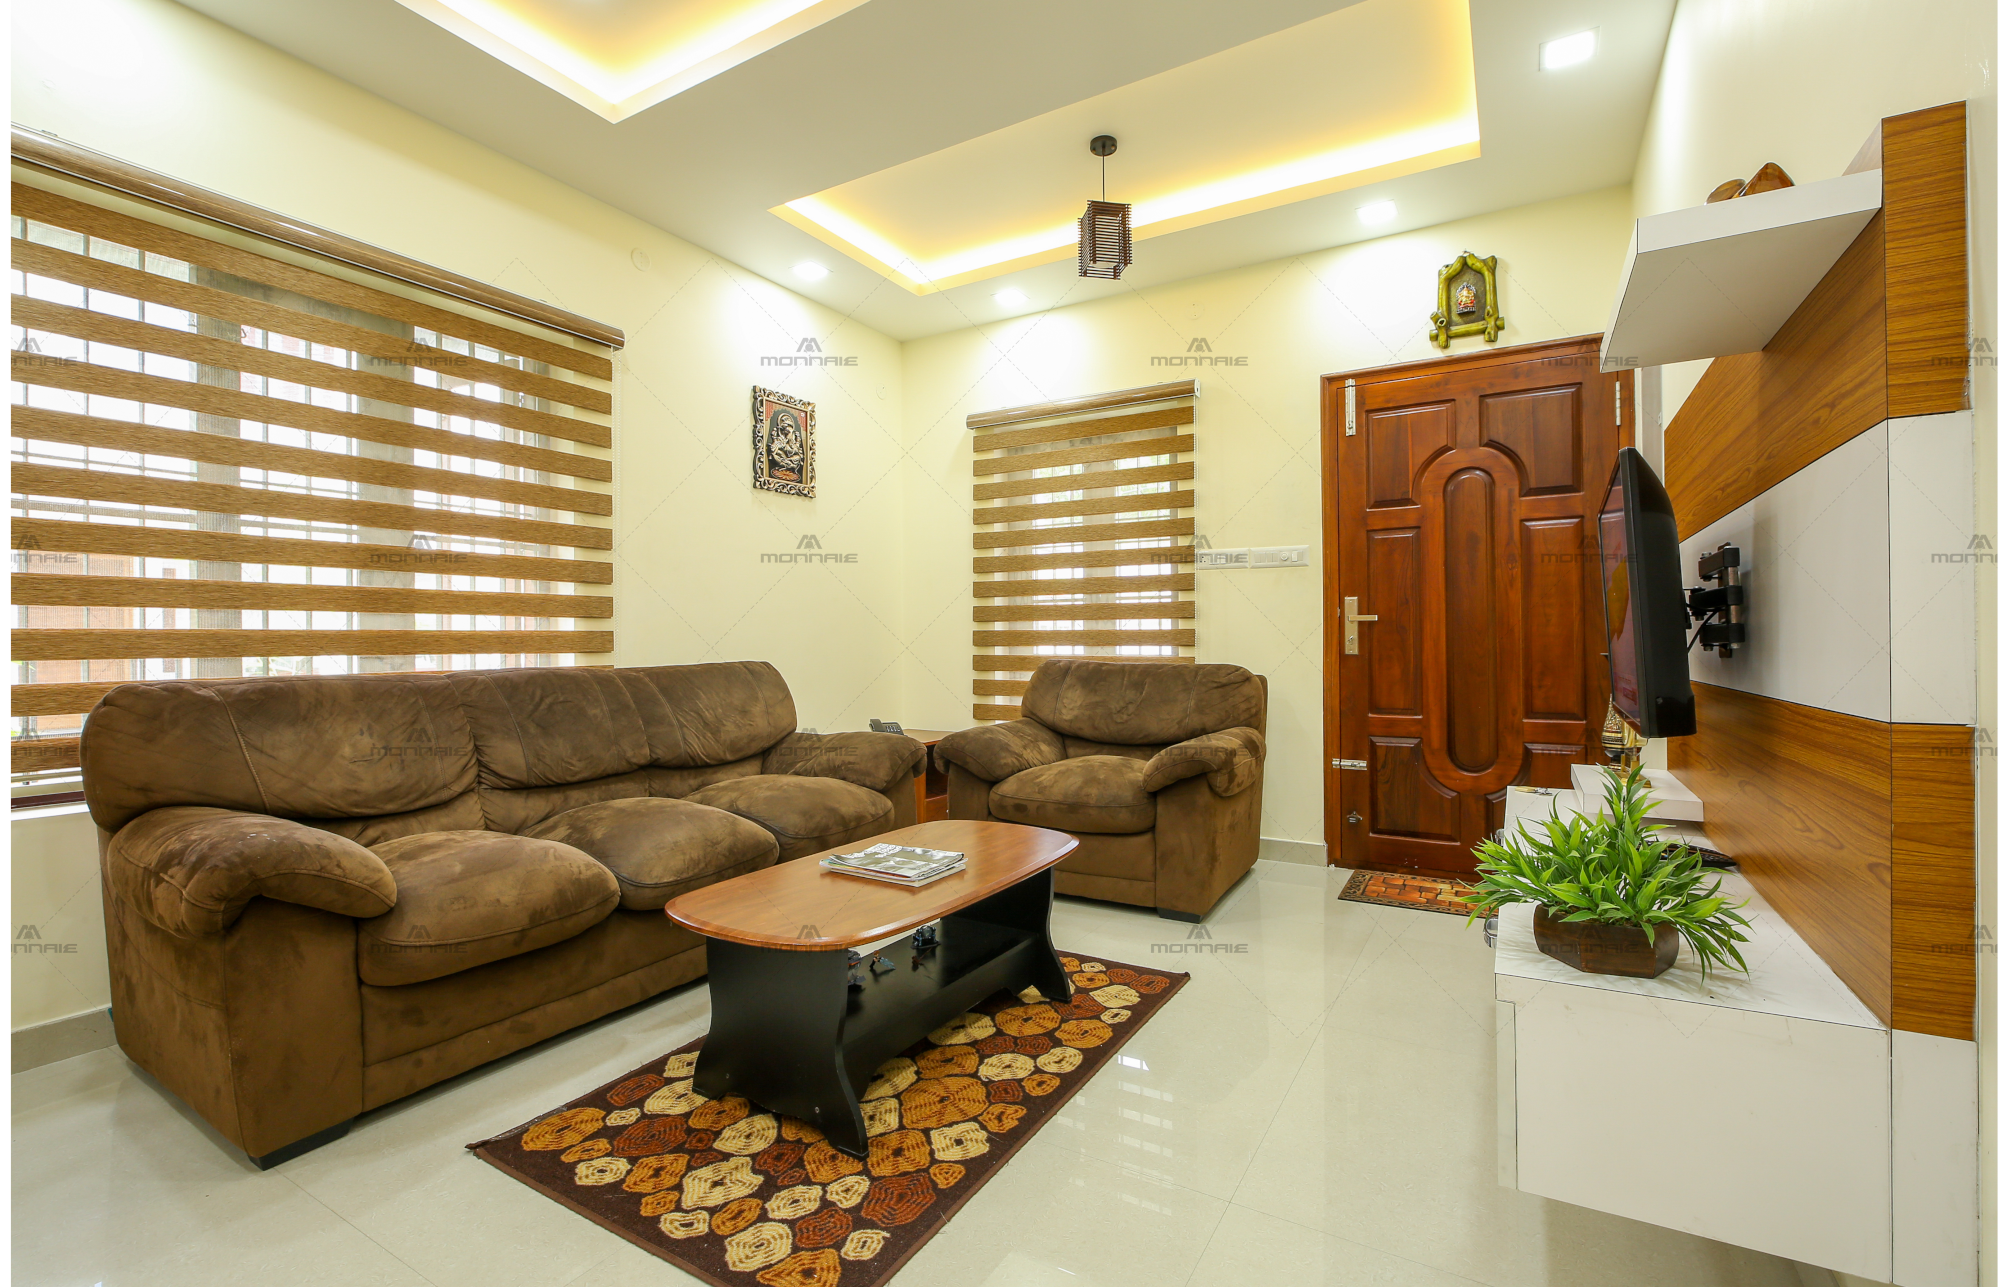 Interior Designing Interior Furnishing Interior Decoration With Affordable Price In Kerala By Monnaie Architects Interiors Medium